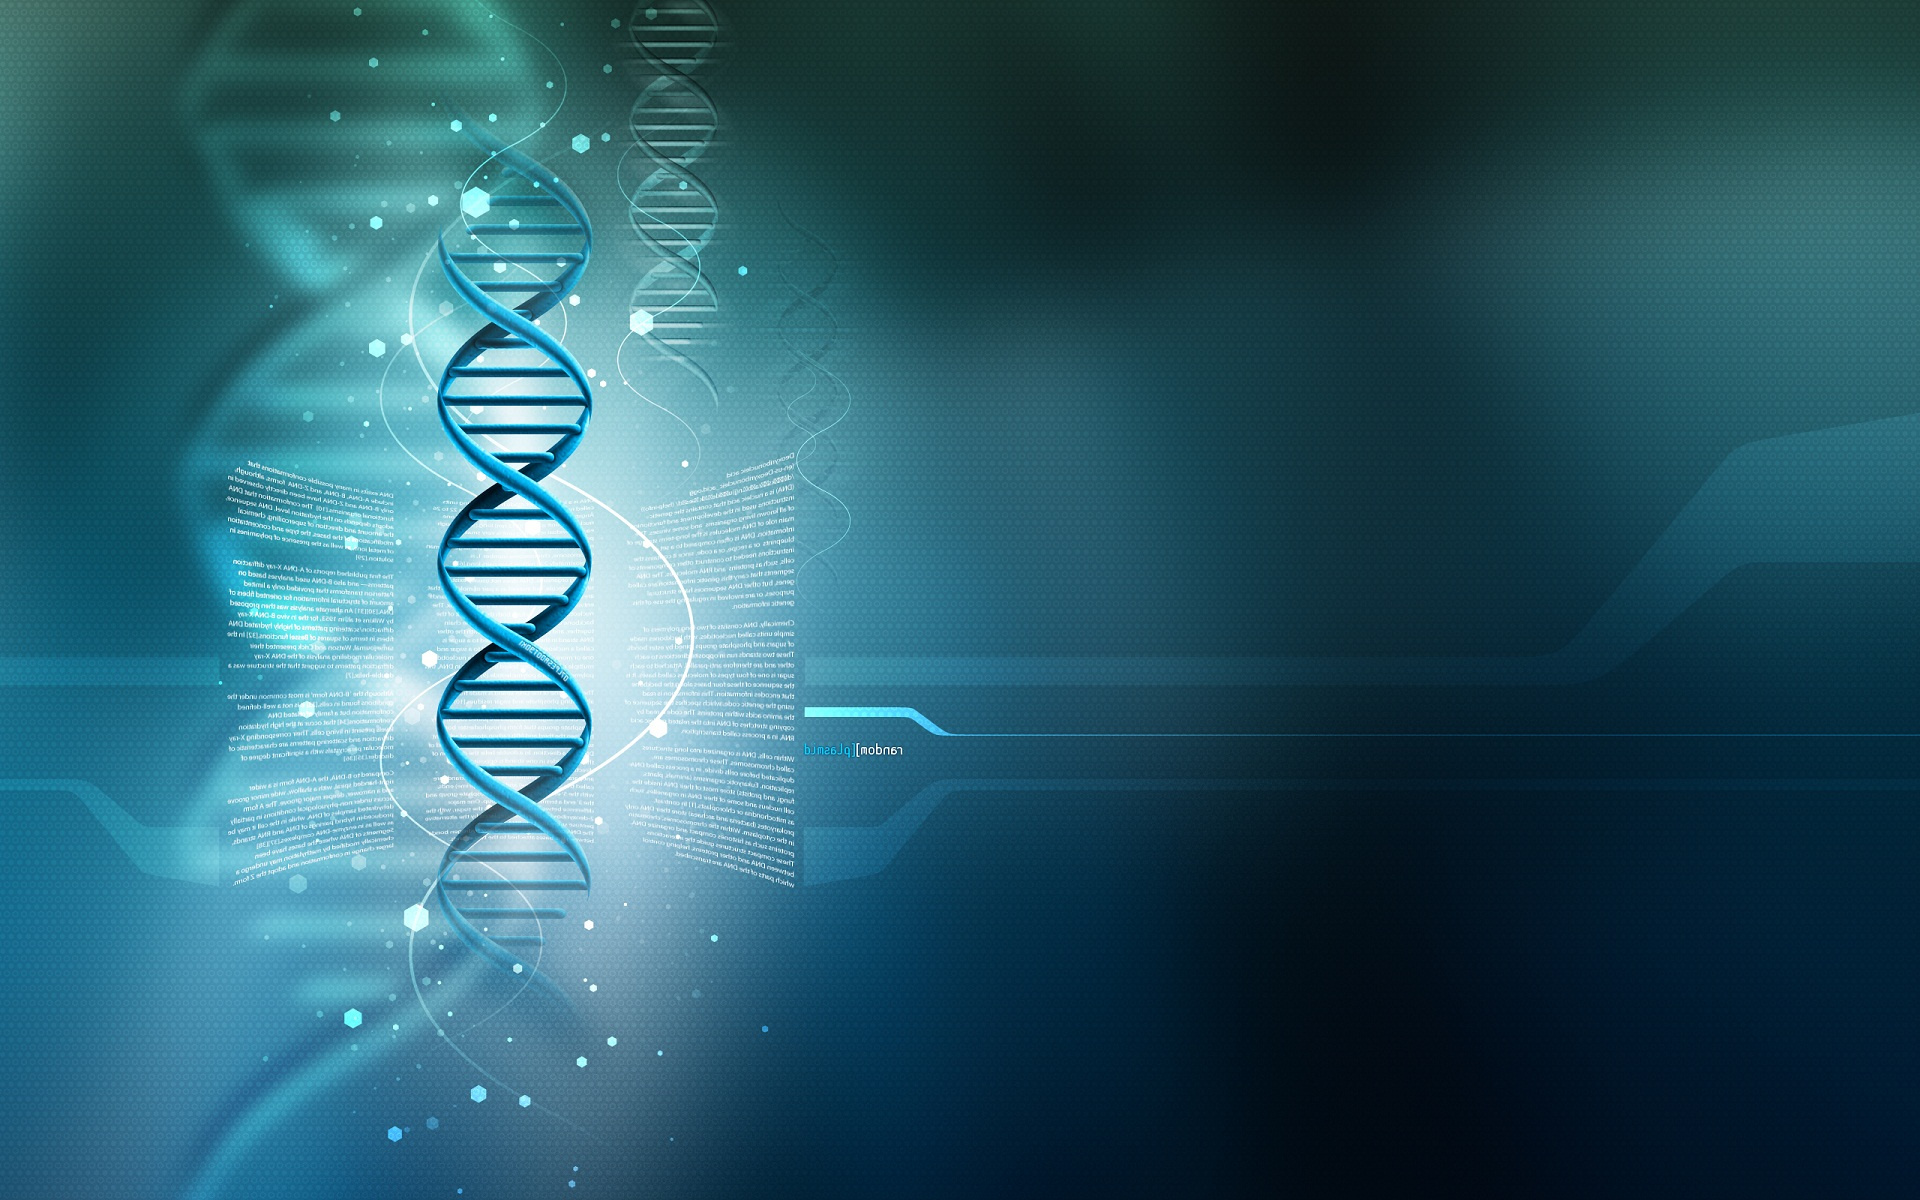 Hd dna wallpaper wallpapersafari for 3d wallpapers for home wall in pakistan